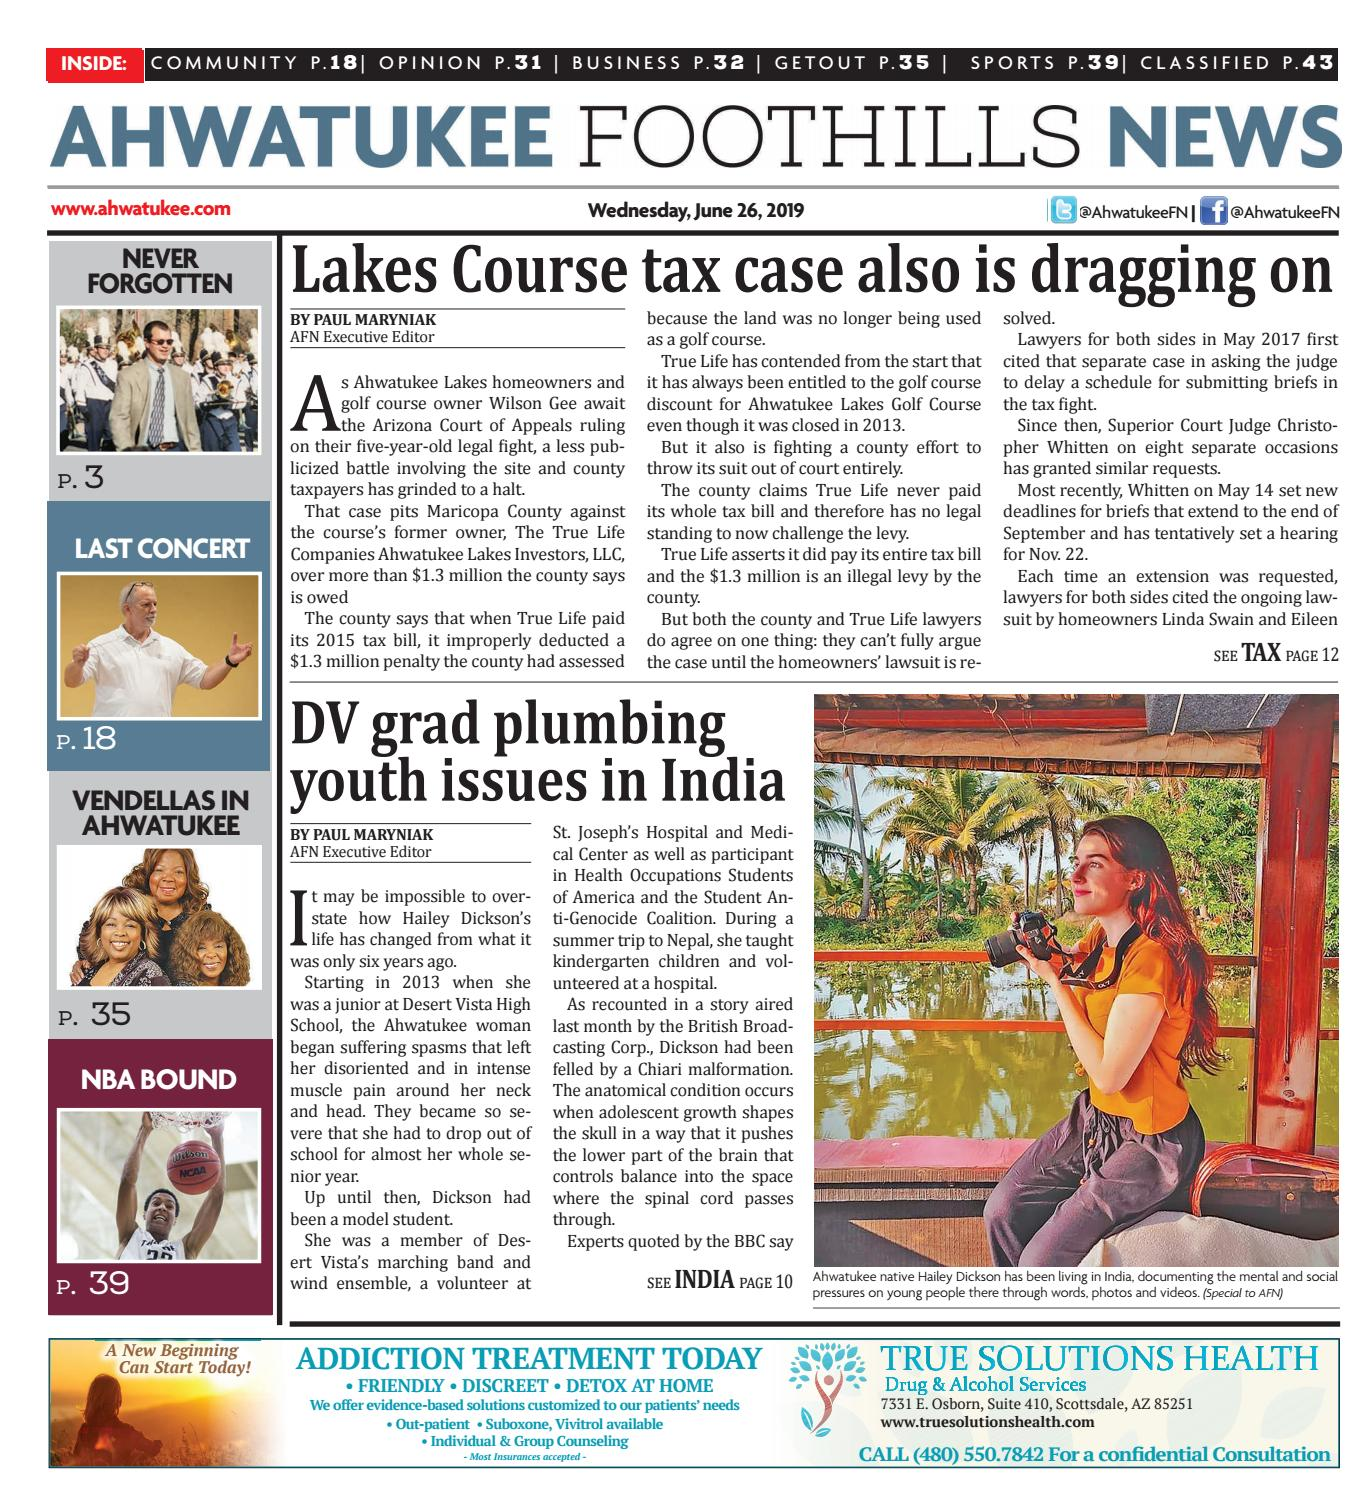 Ahwatukee Foothills News - June 26, 2019 by Times Media